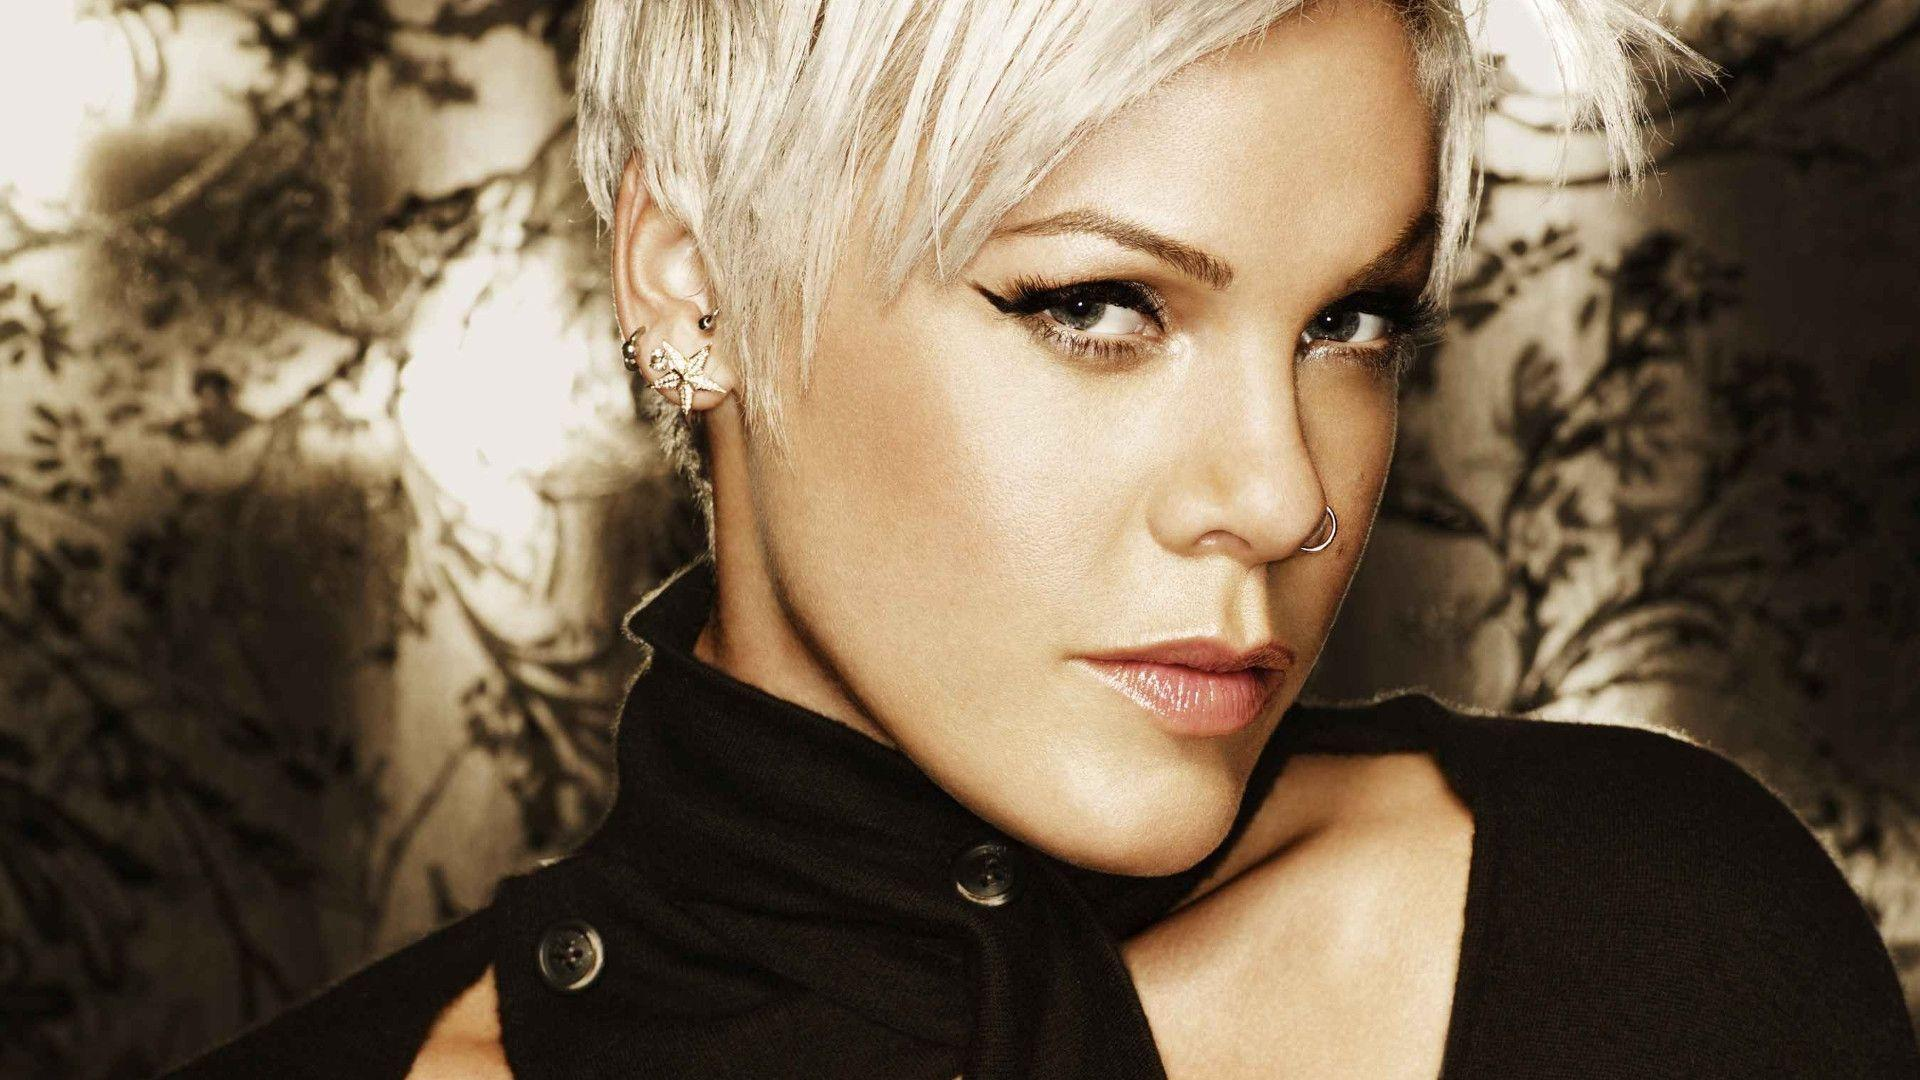 p!nk hd wallpapers